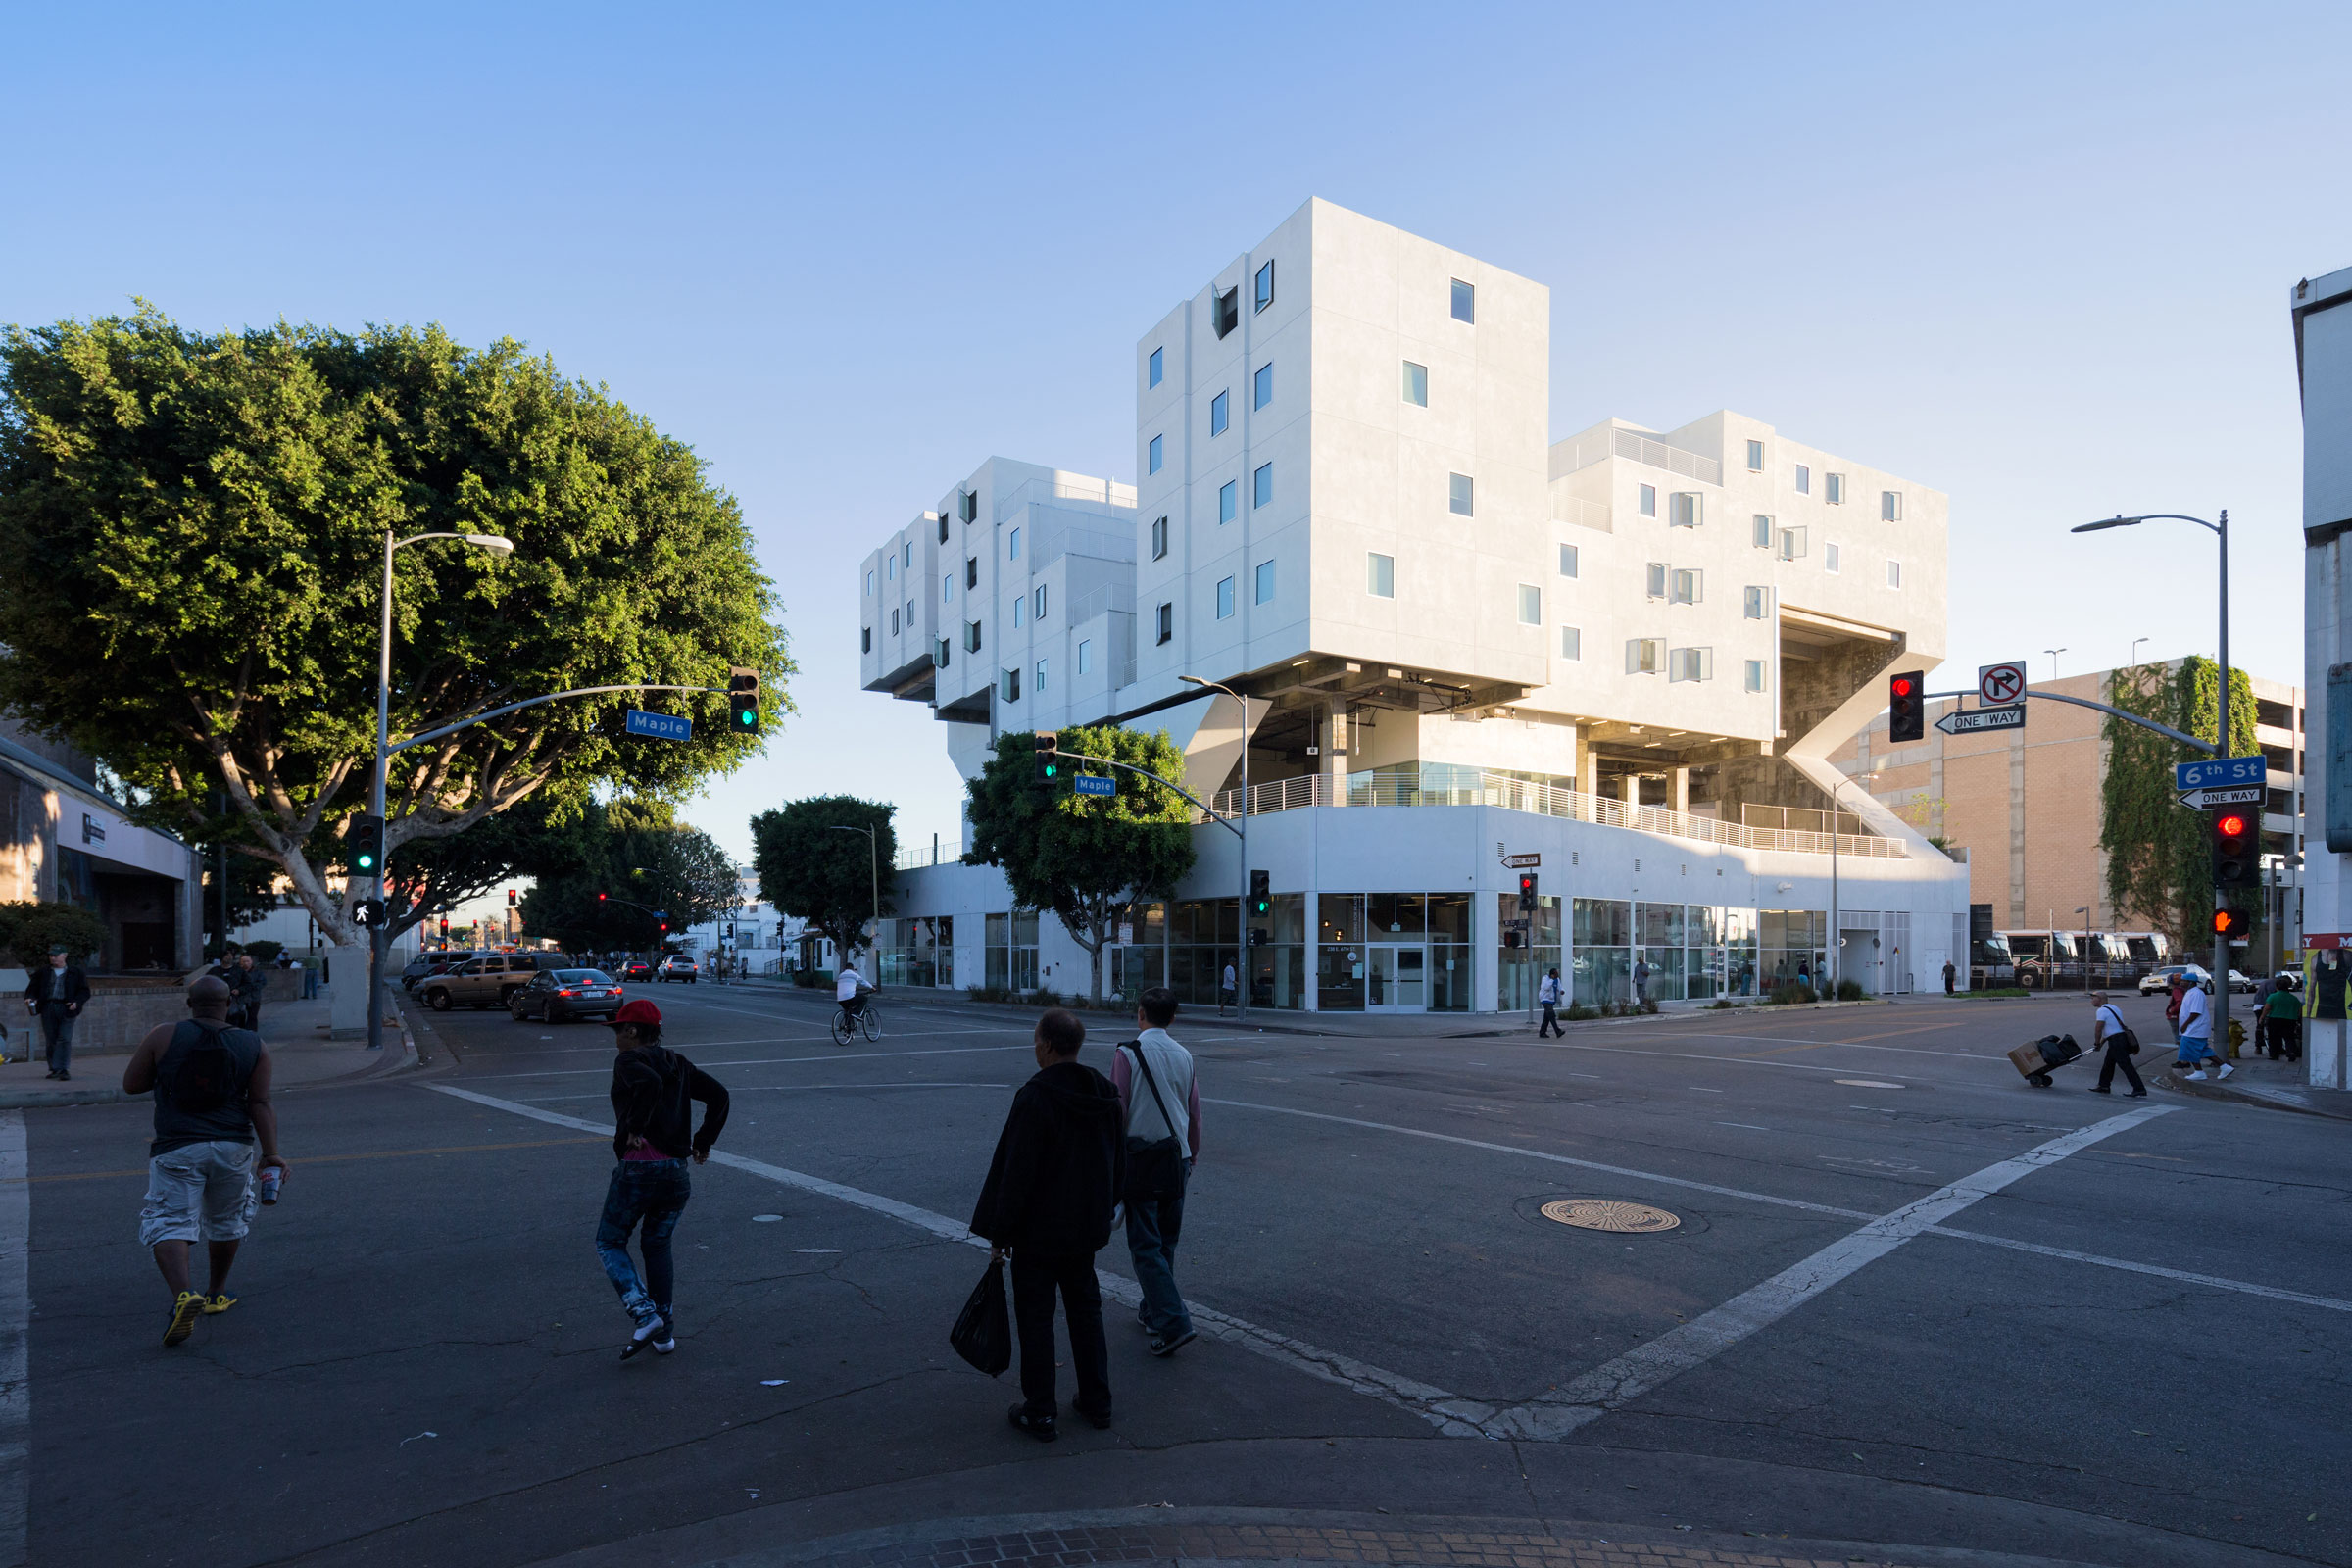 5 Affordable Housing Prototypes Making Housing More Accessible in America